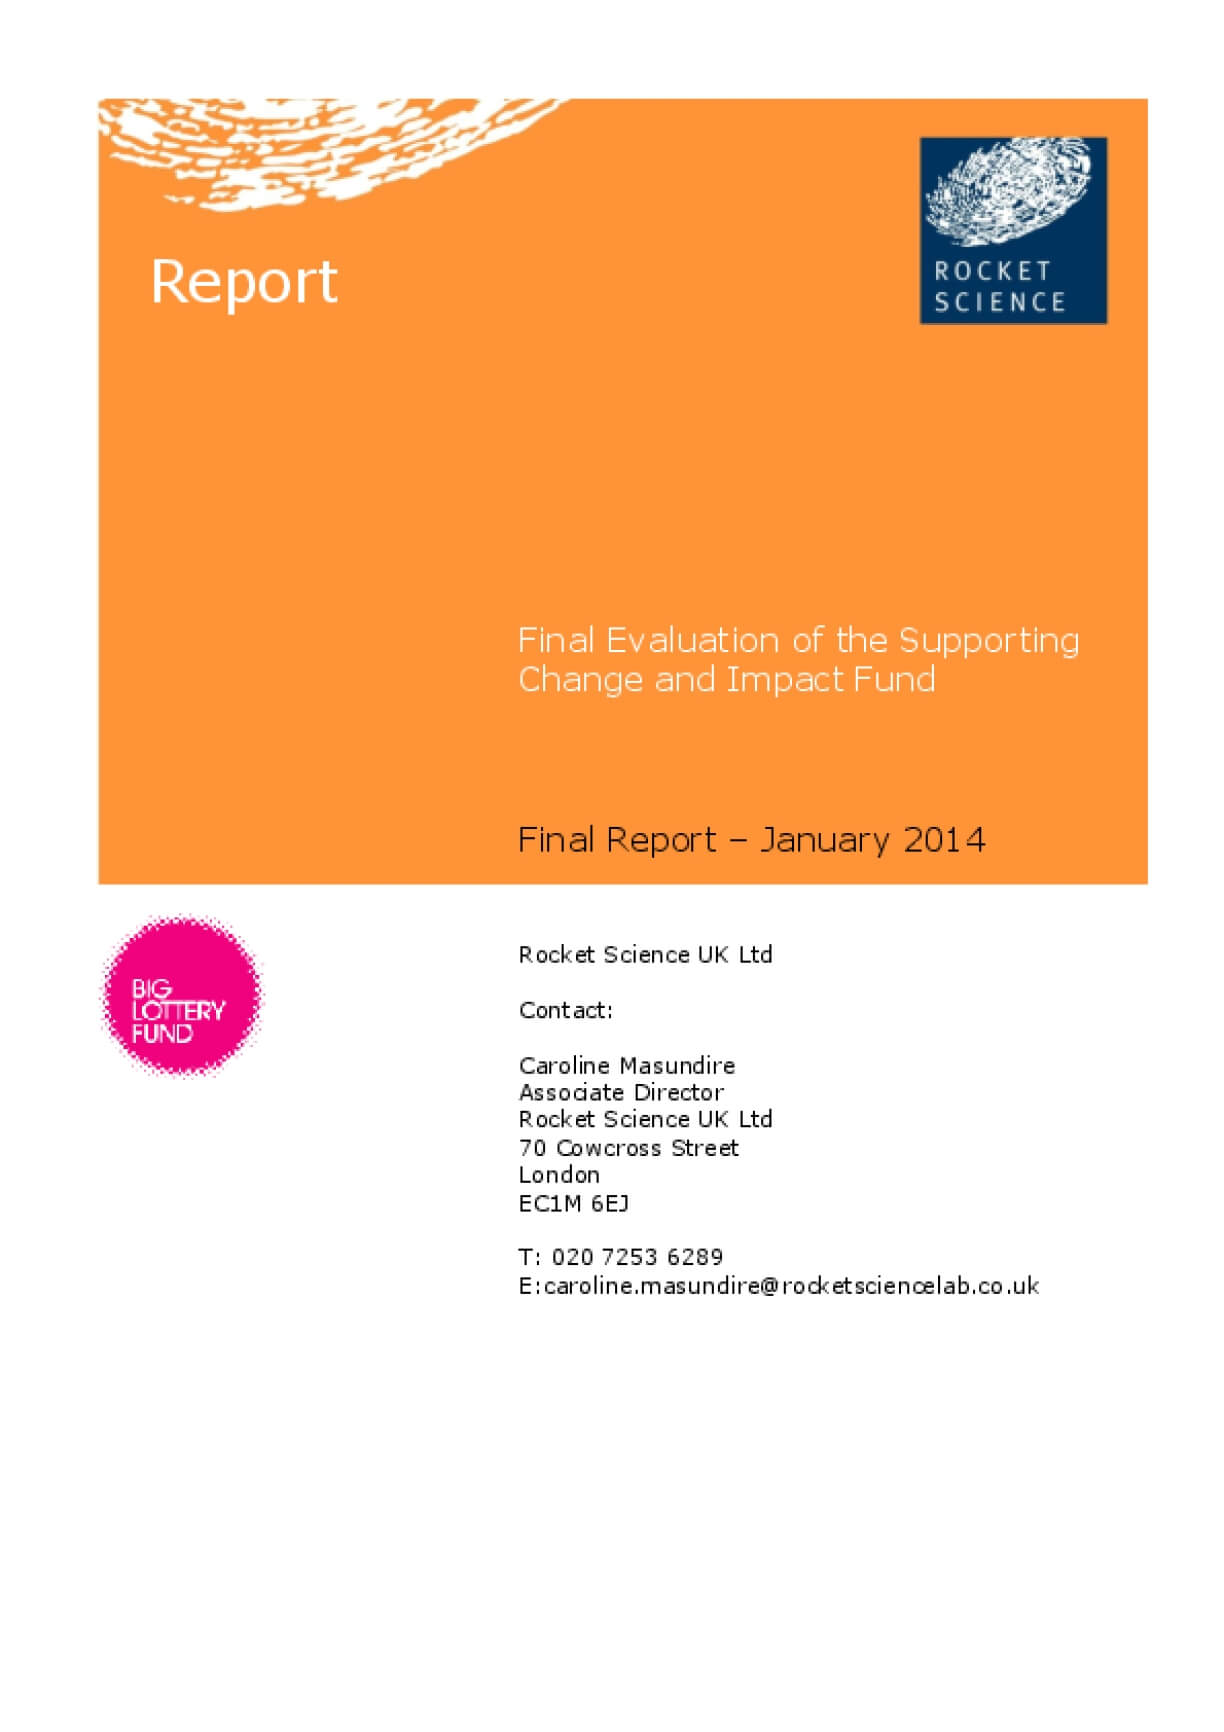 Final Evaluation of the Supporting Change and Impact Fund